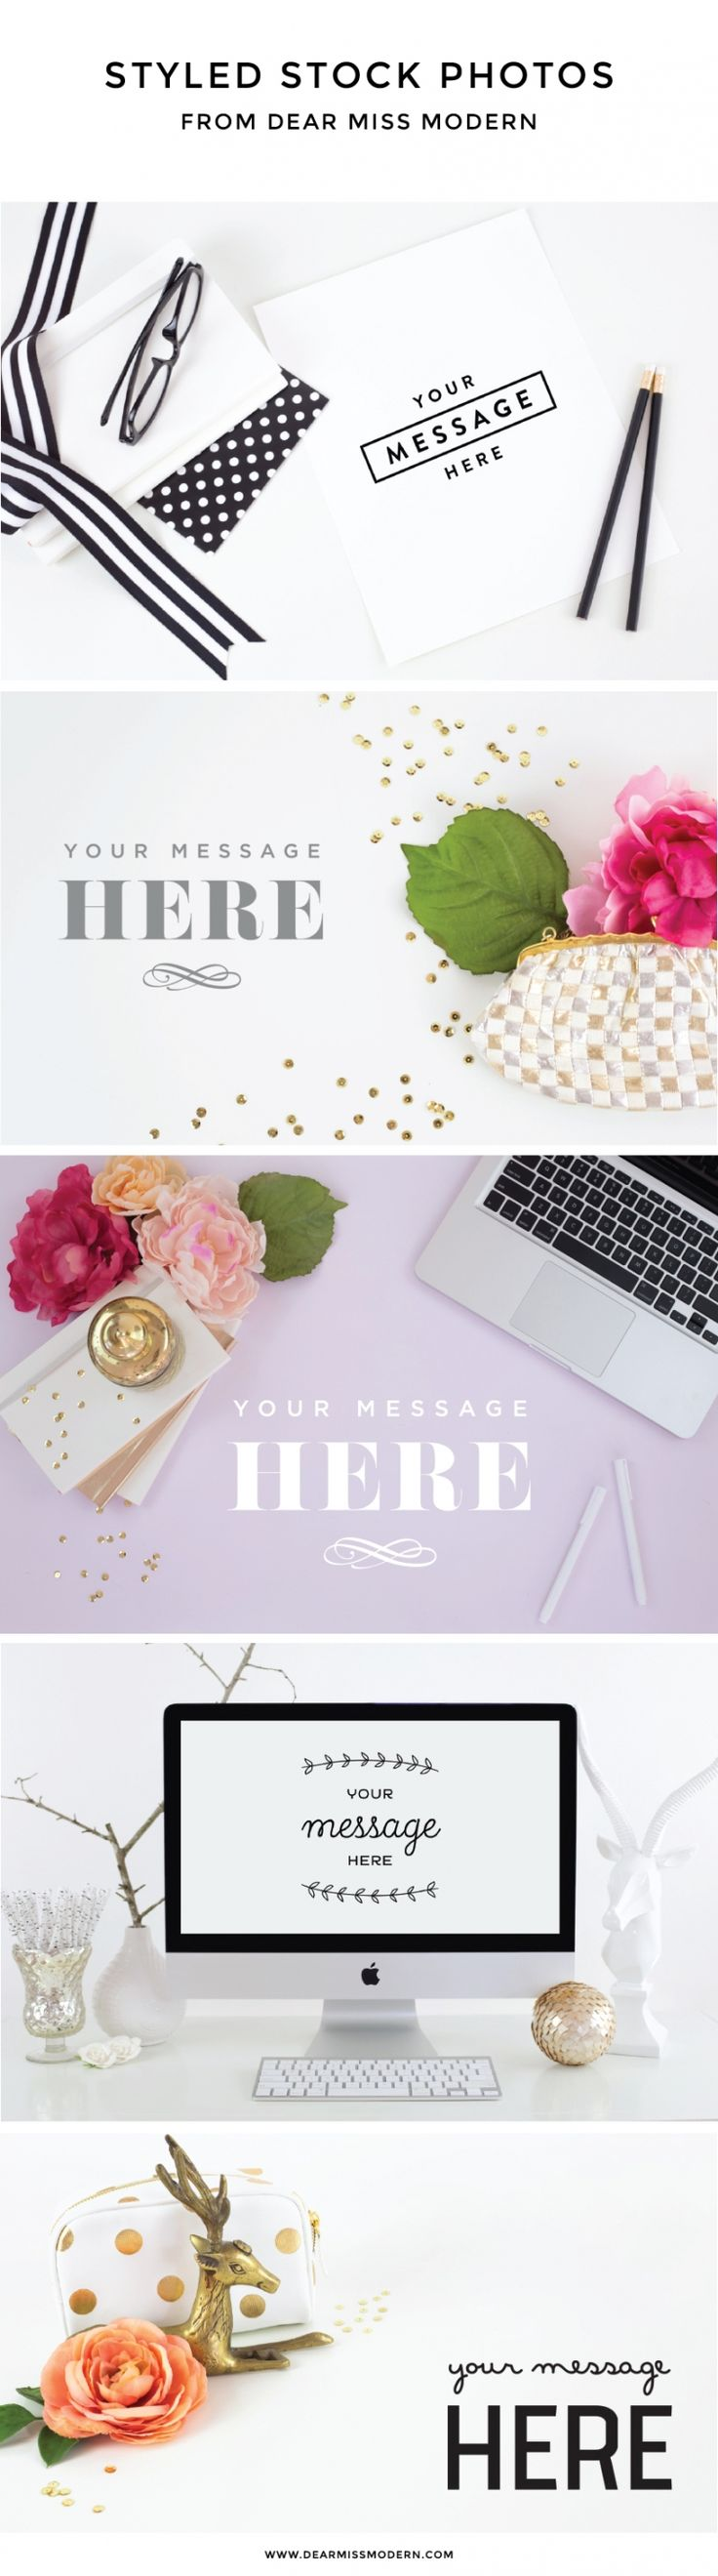 Introducing our brand new, and if-we-do-say-so-ourselves BEAUTIFUL styled photography, now available in the Dear Miss Modern Shop! Build your new photo library with our styled stock at www.dearmissmodern.com